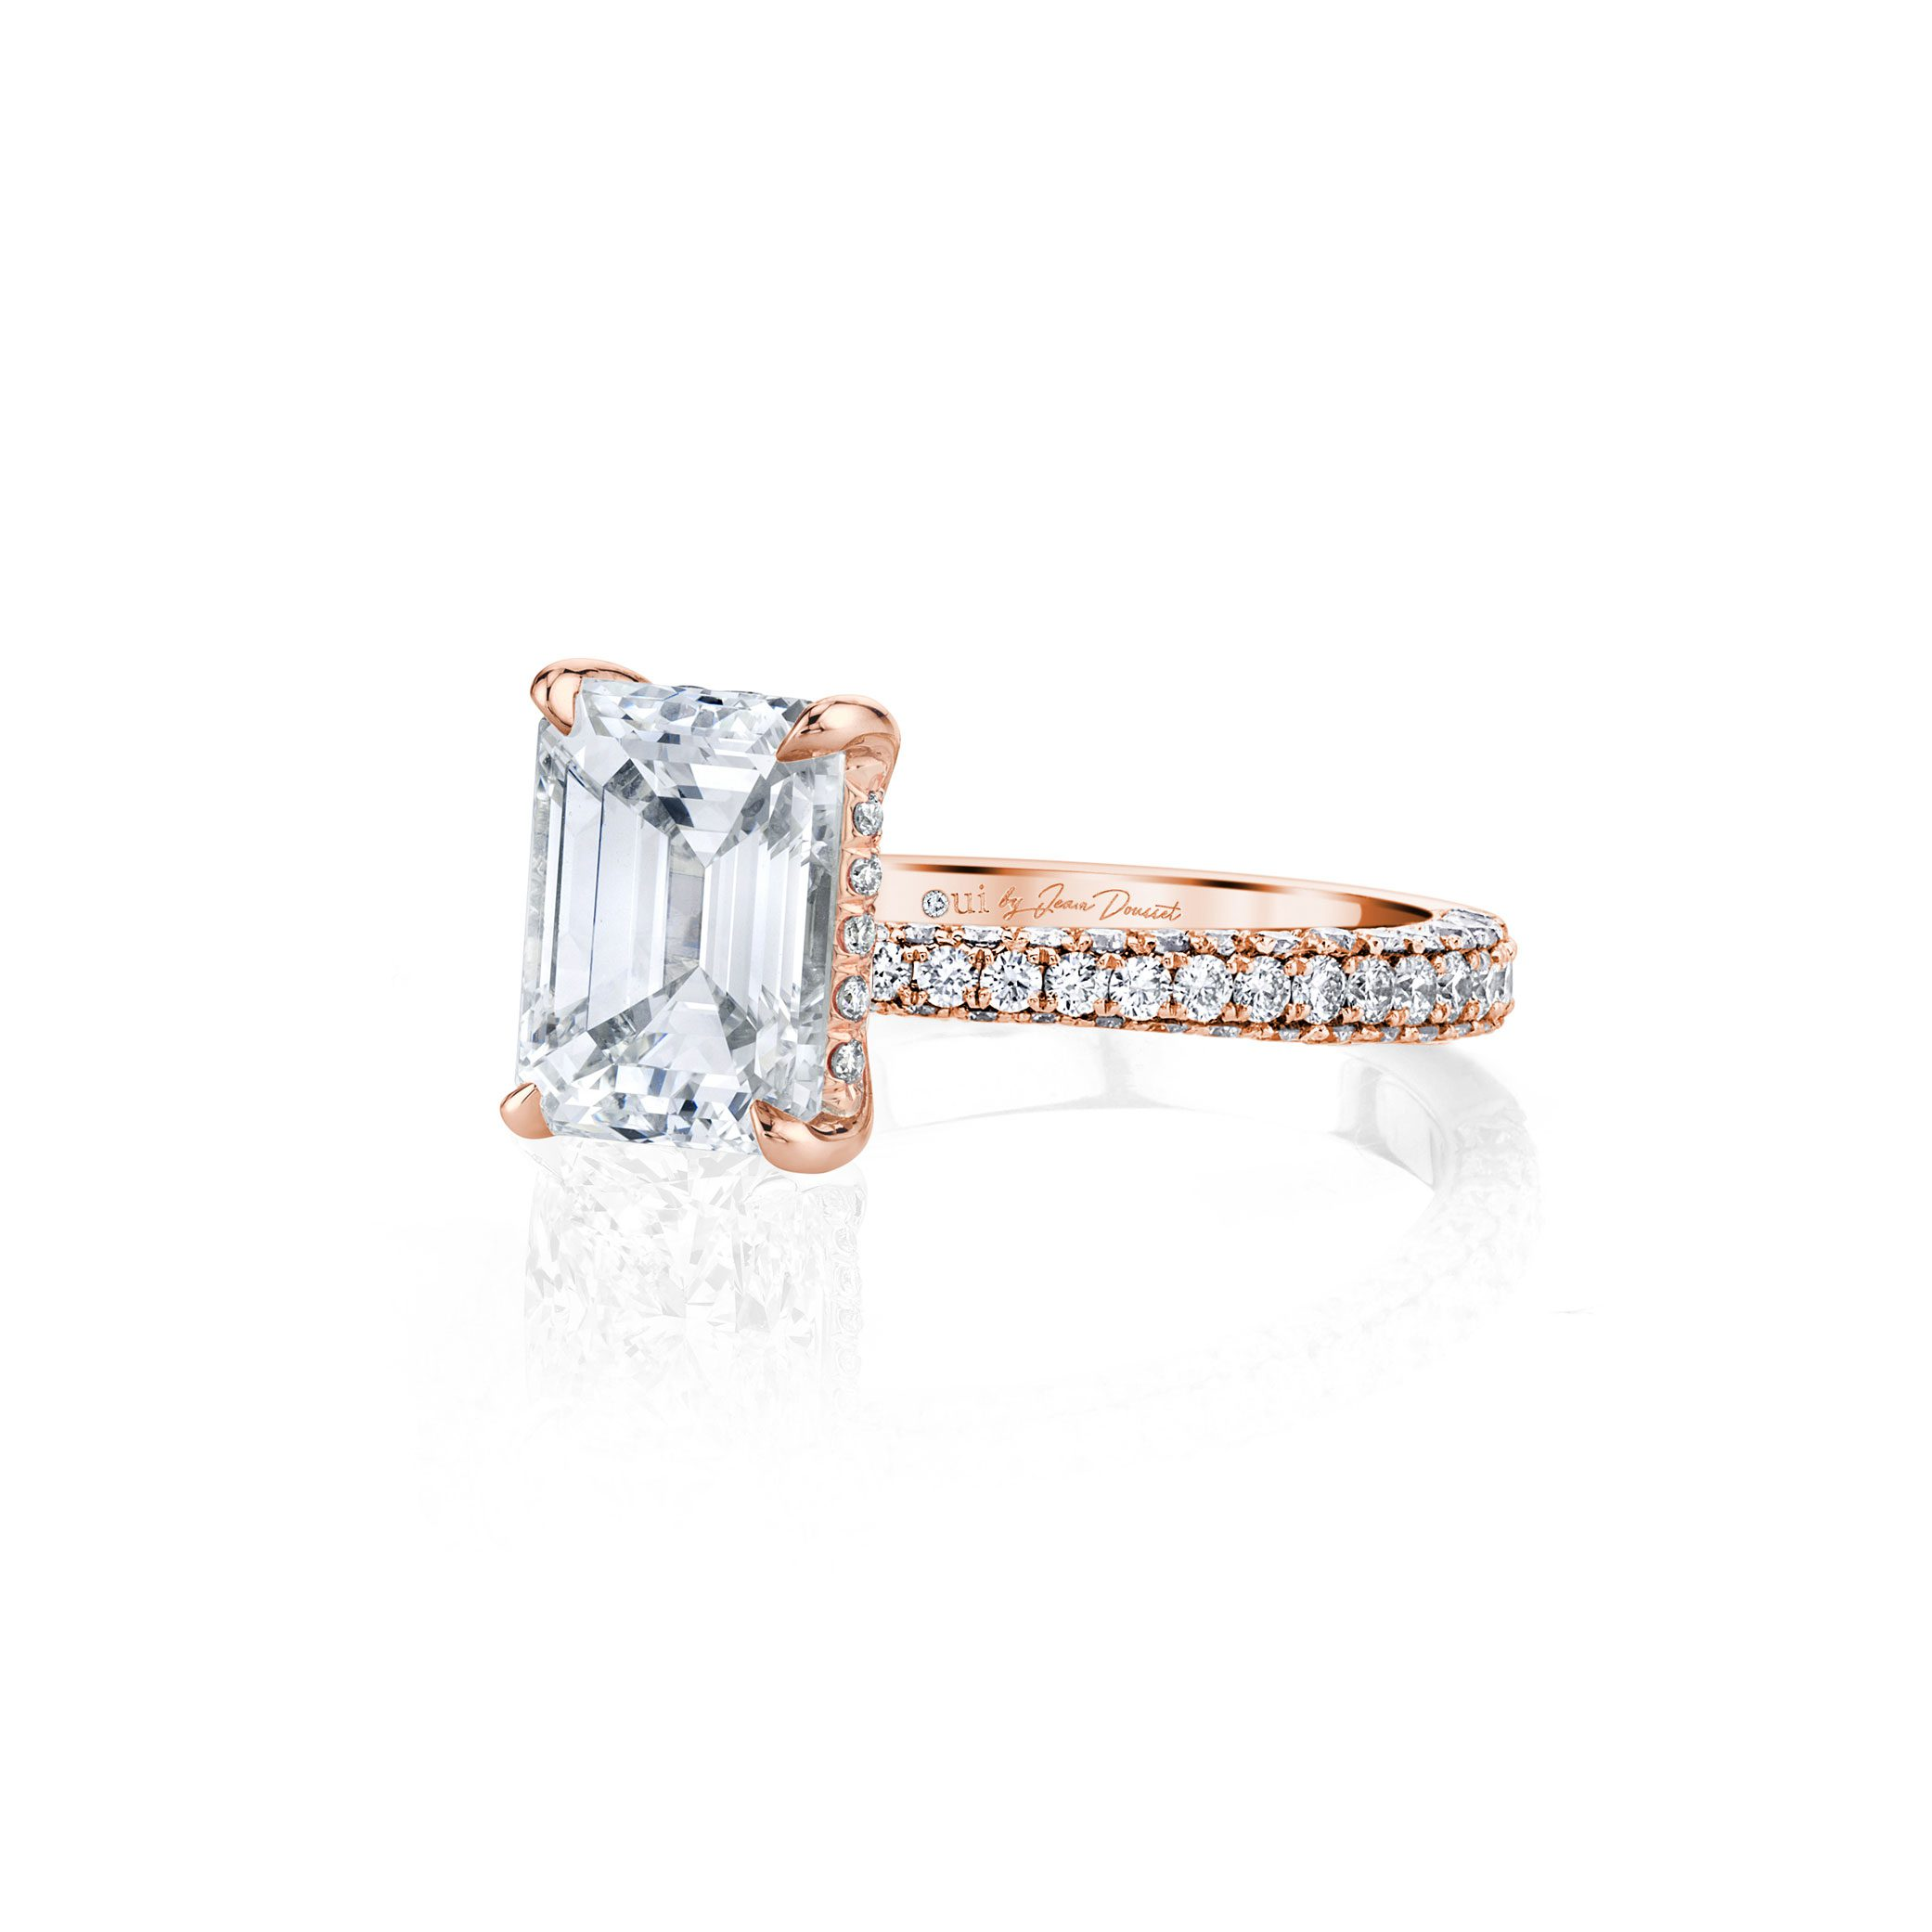 Jacqueline Emerald Cut Lab Grown Diamond Solitaire Engagement Ring Pavé Rose Gold Band from Oui